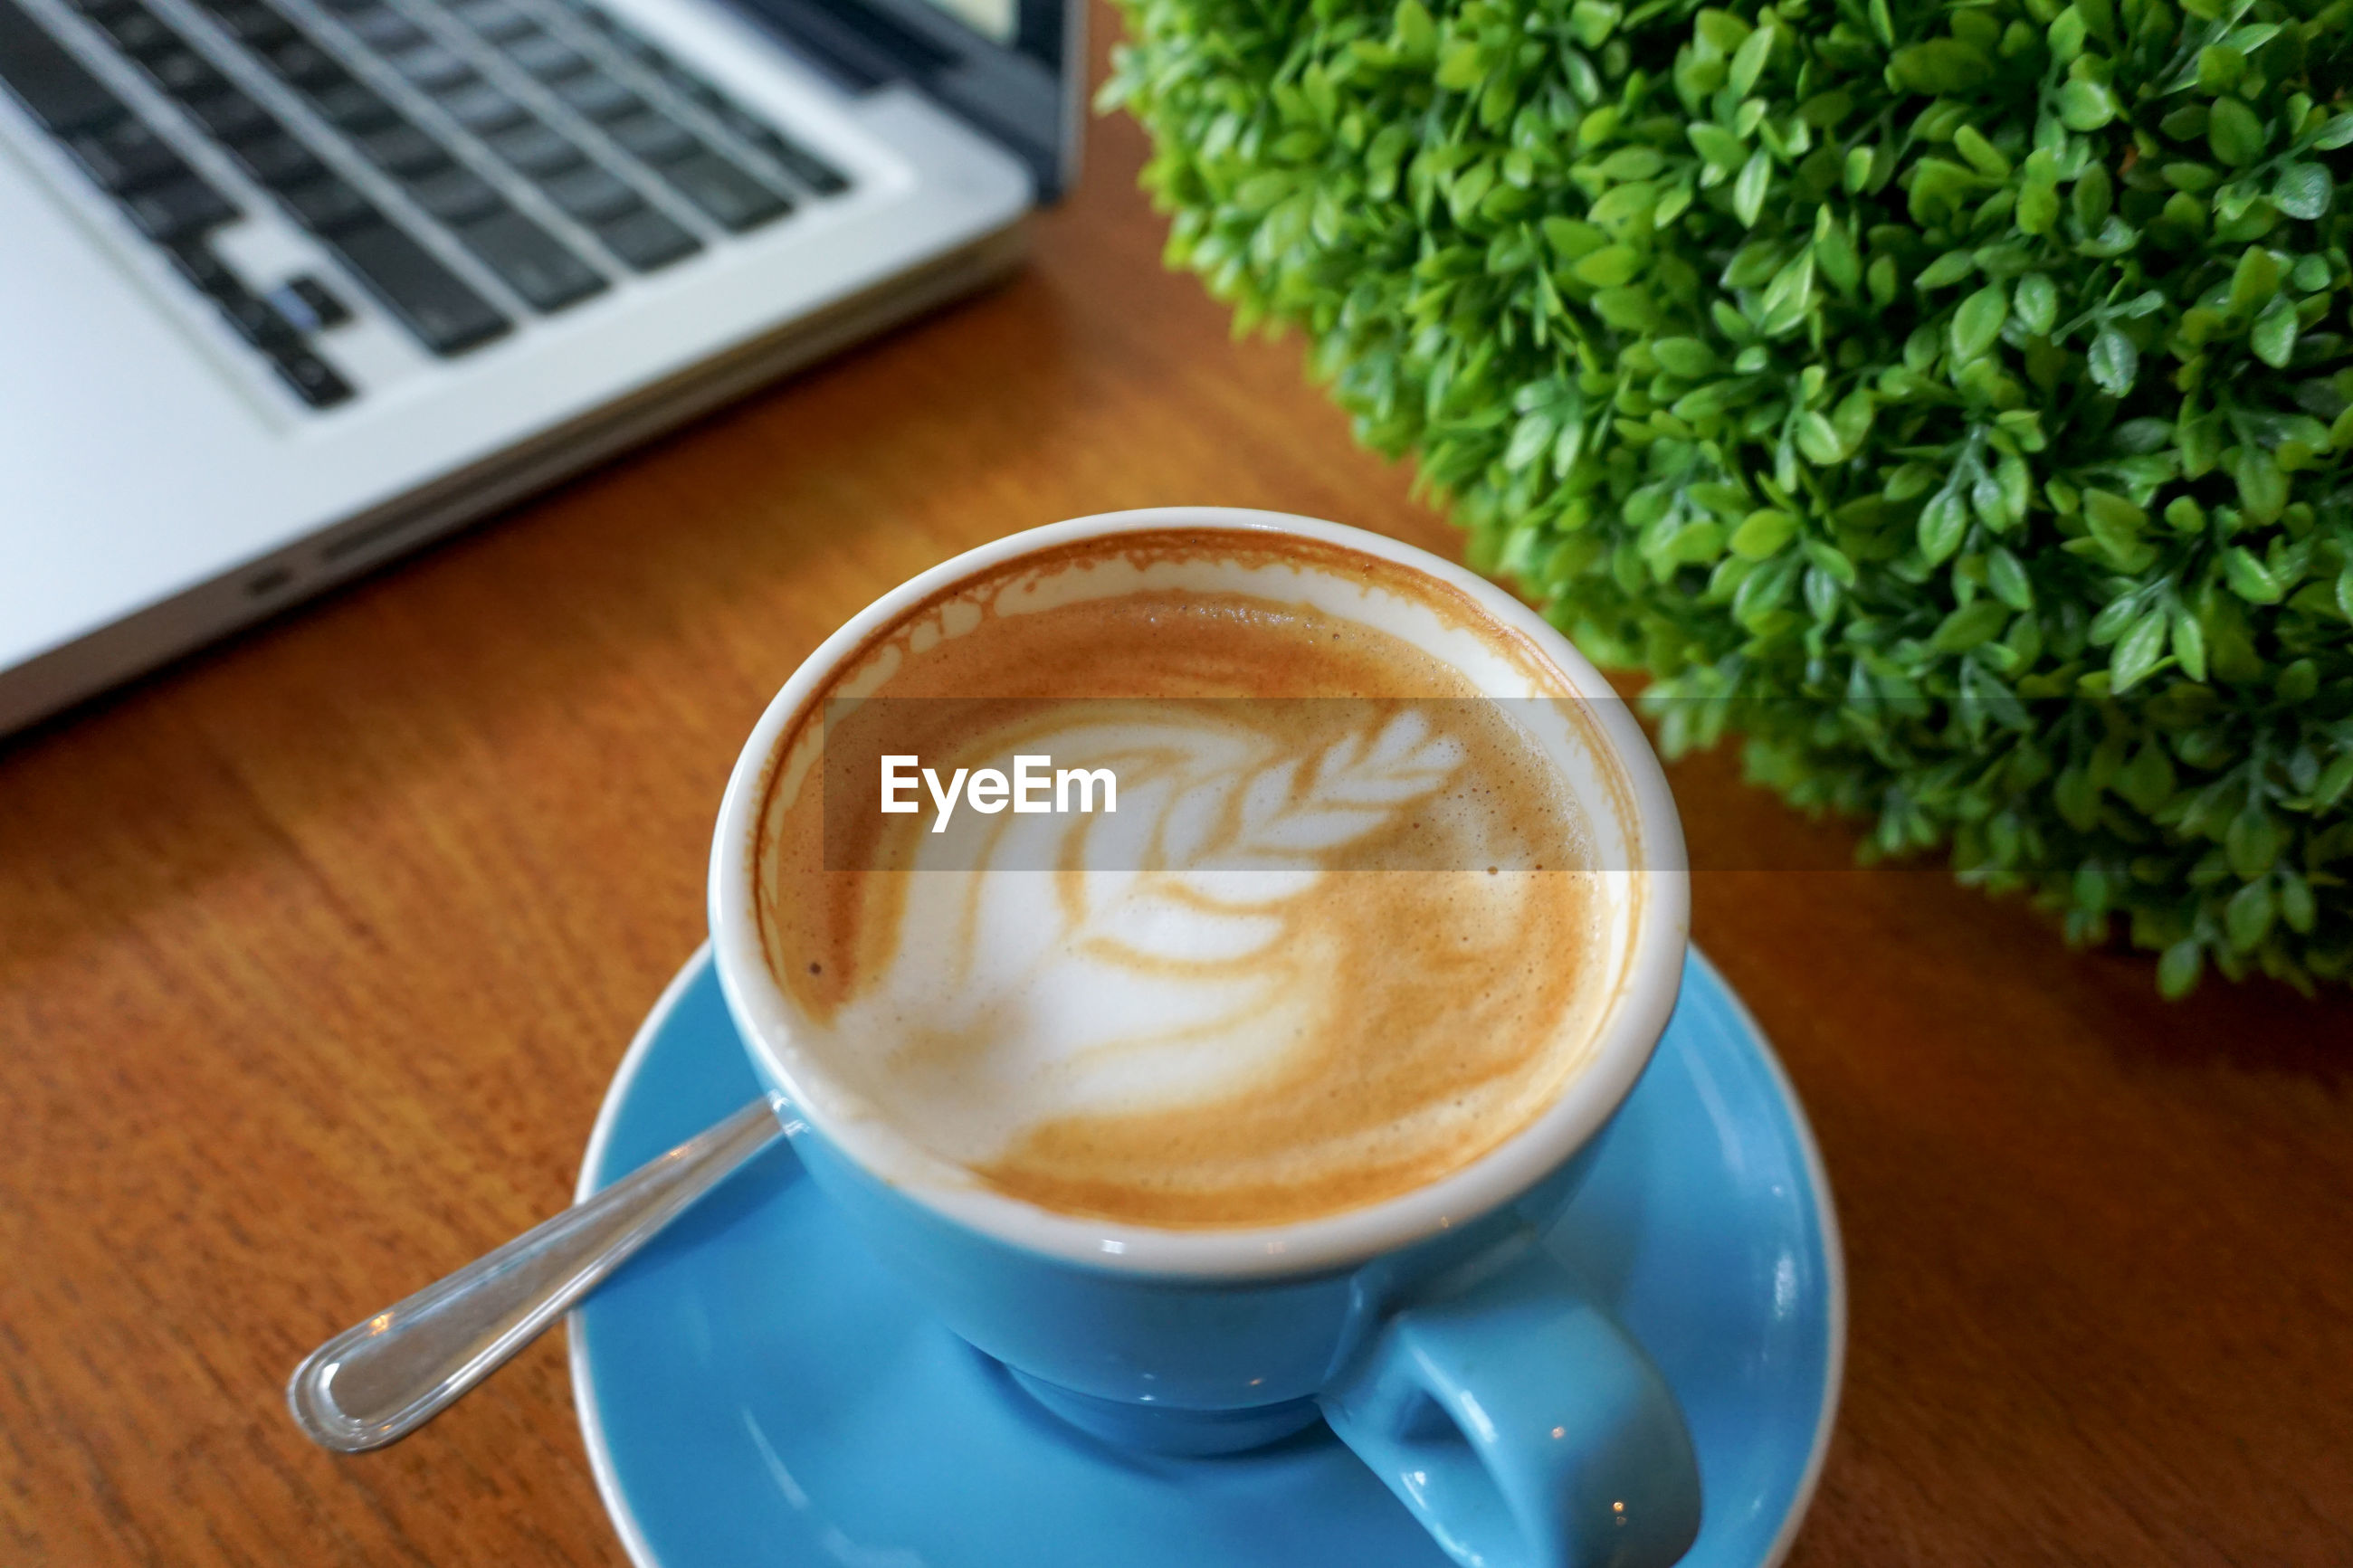 A glass of coffee next to the laptop